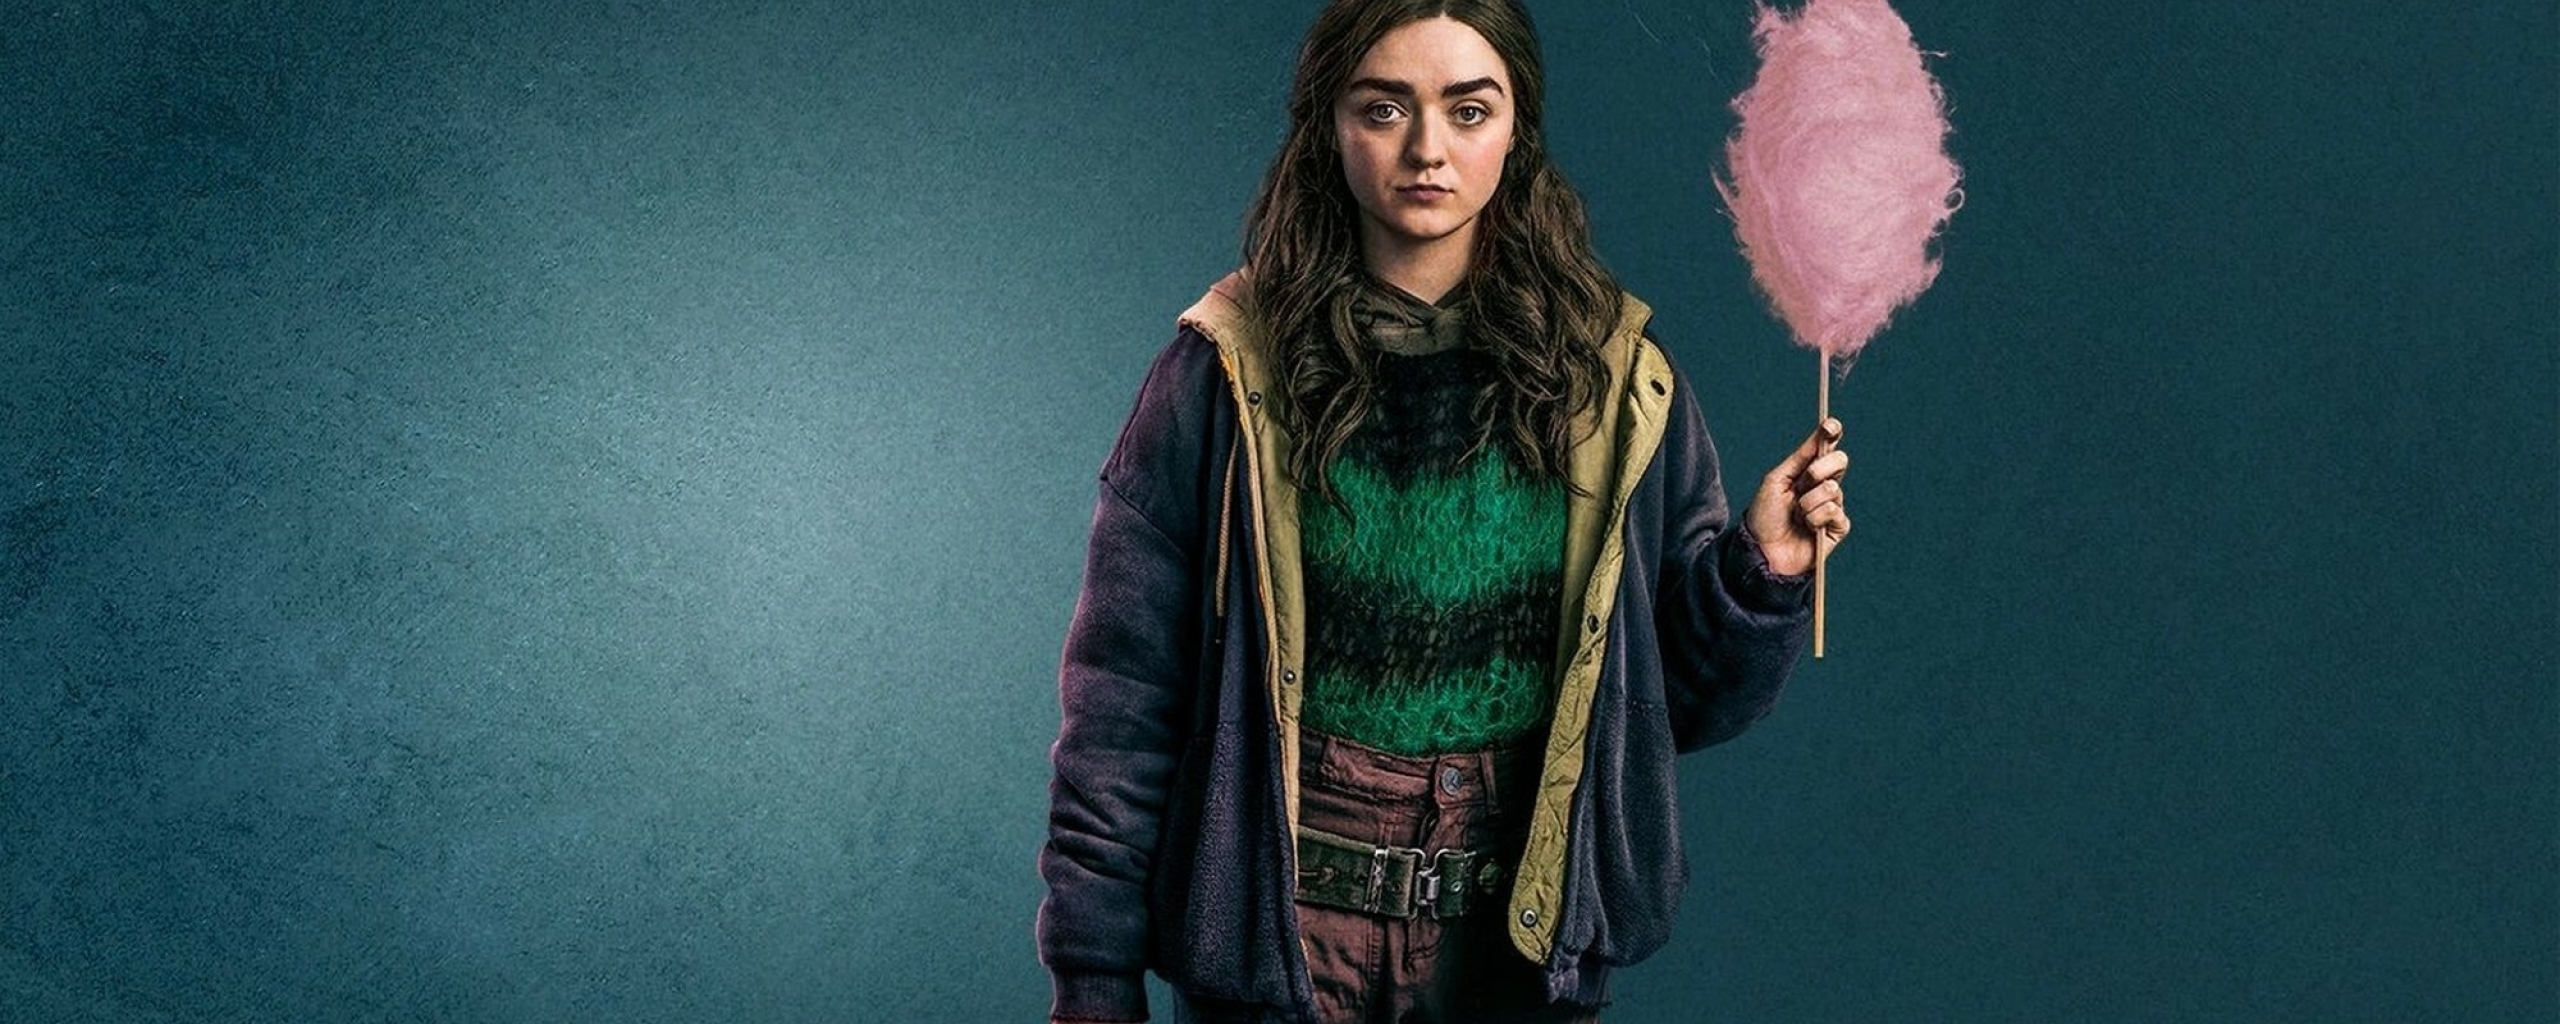 Maisie Williams Two Weeks To Live Wallpaper in 2560x1024 Resolution